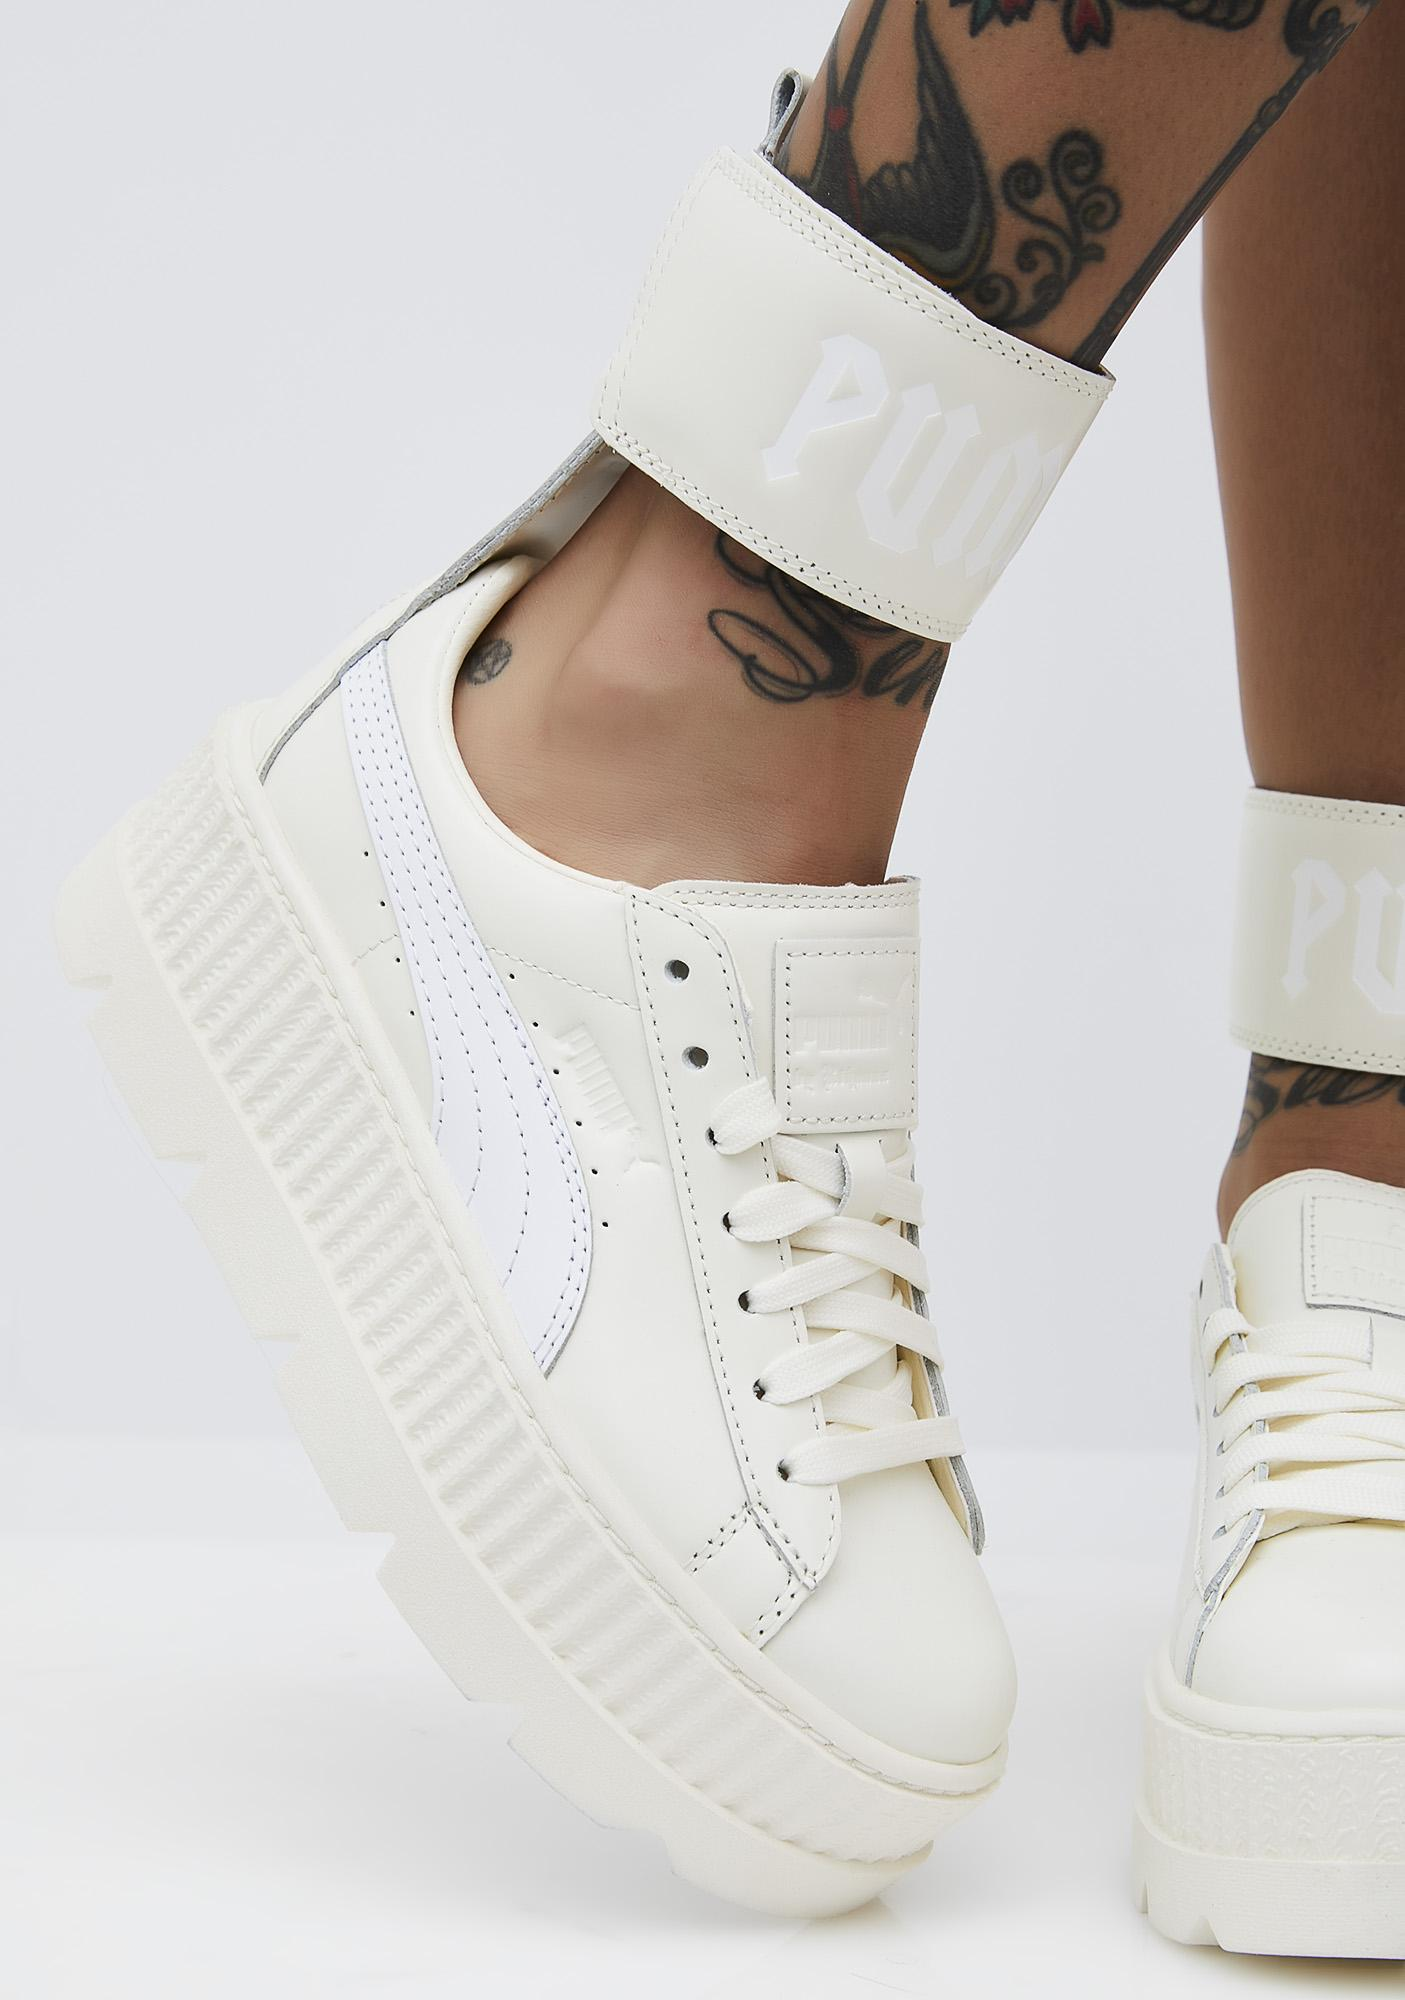 ANKLE STRAP SNEAKER - FOOTWEAR - Low-tops & sneakers Fenty Puma by Rihanna Y86hxR1A8